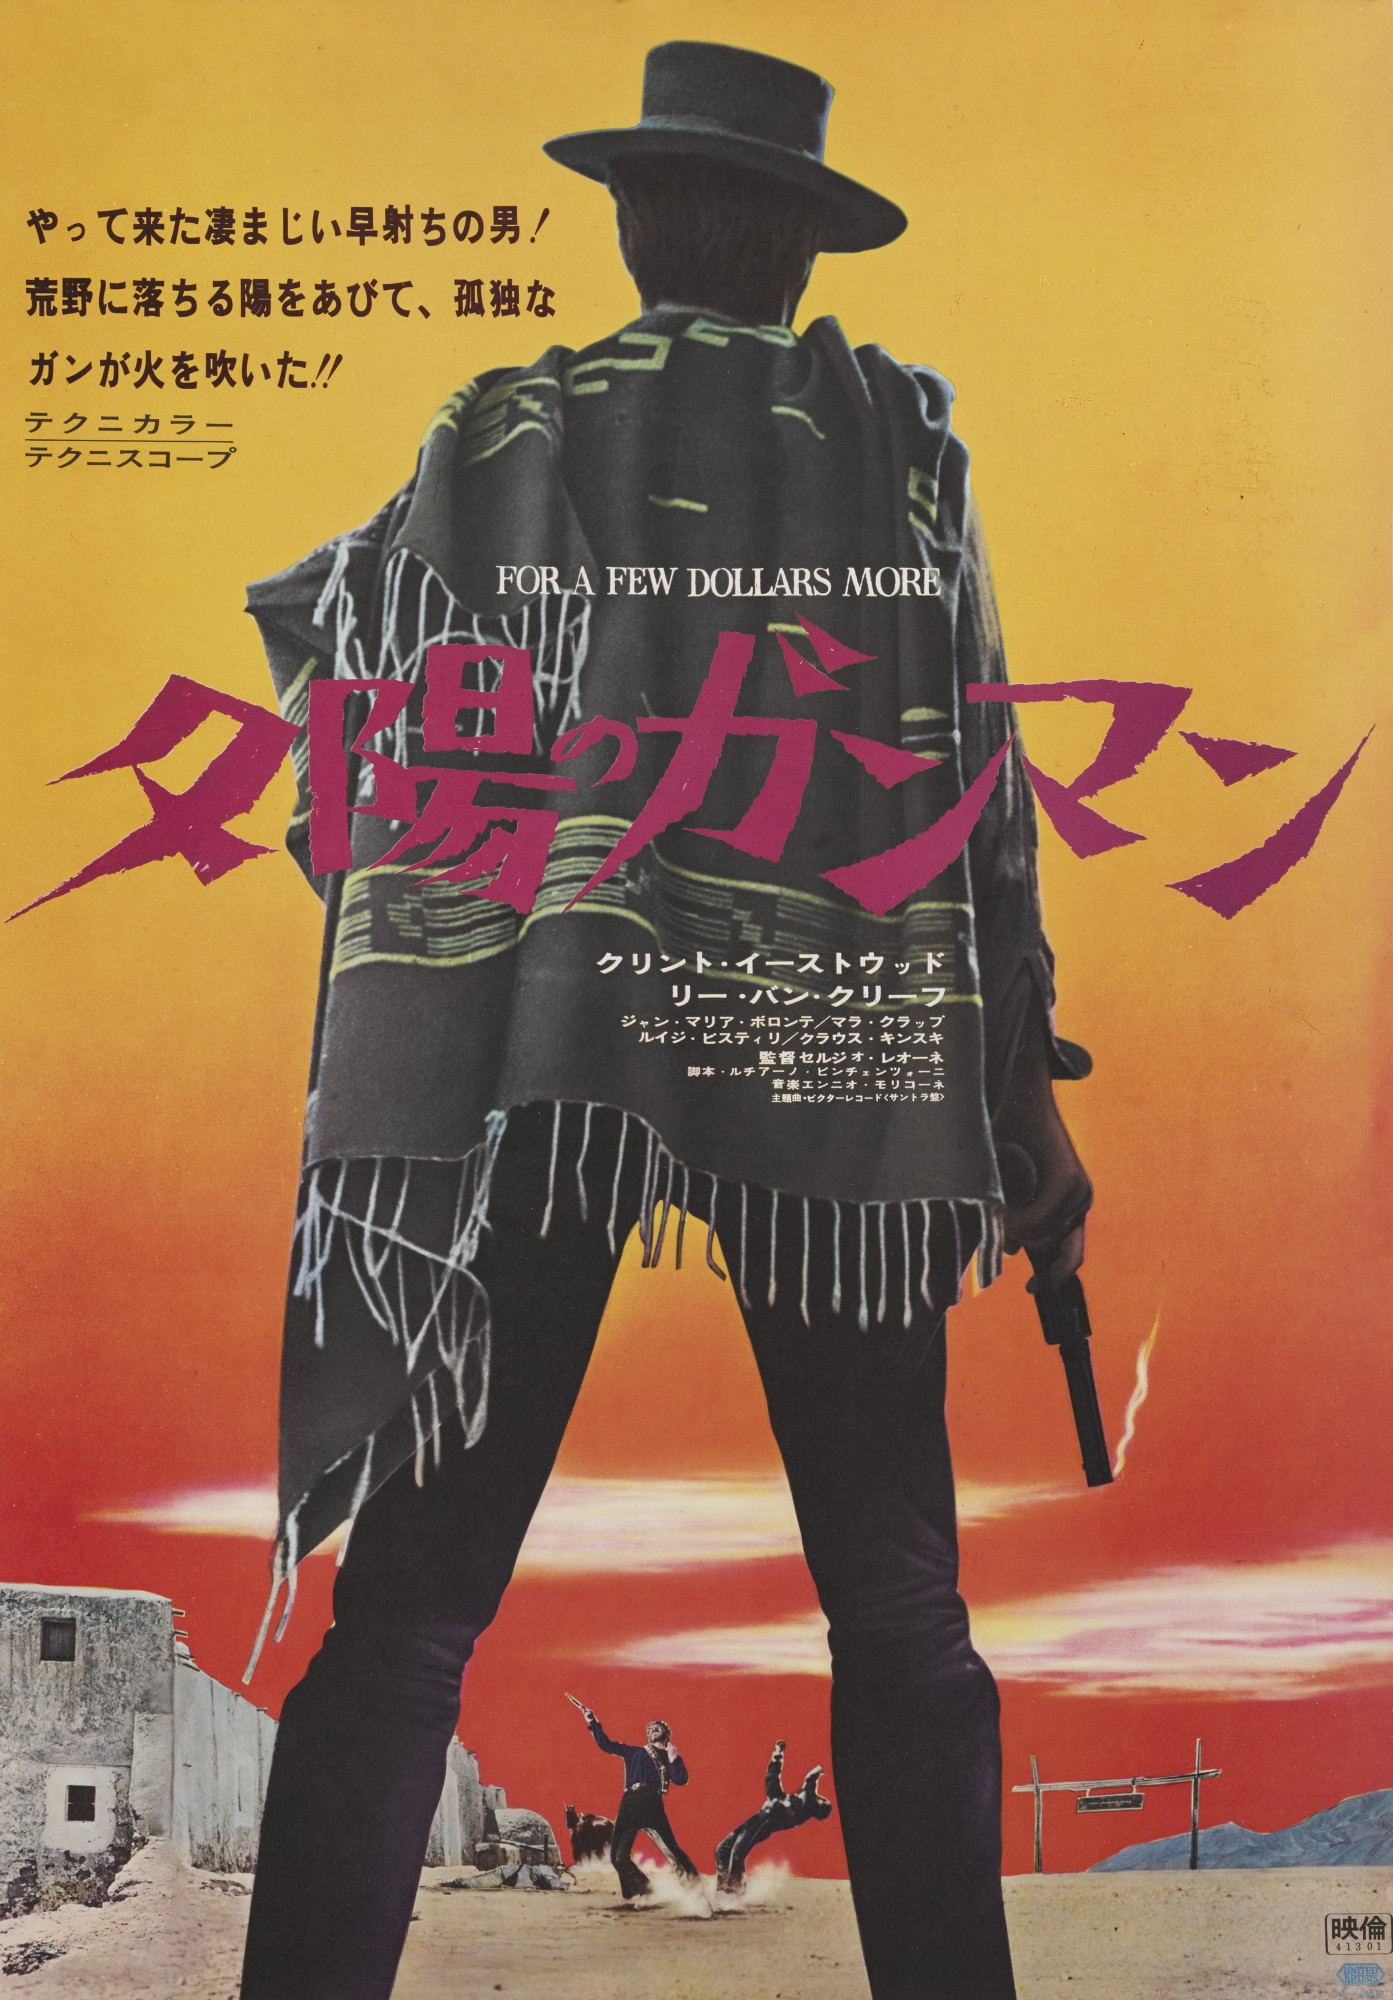 PER QUALCHE DOLLARO IN PIU/FOR A FEW DOLLARS MORE (1965) POSTER, JAPANESE